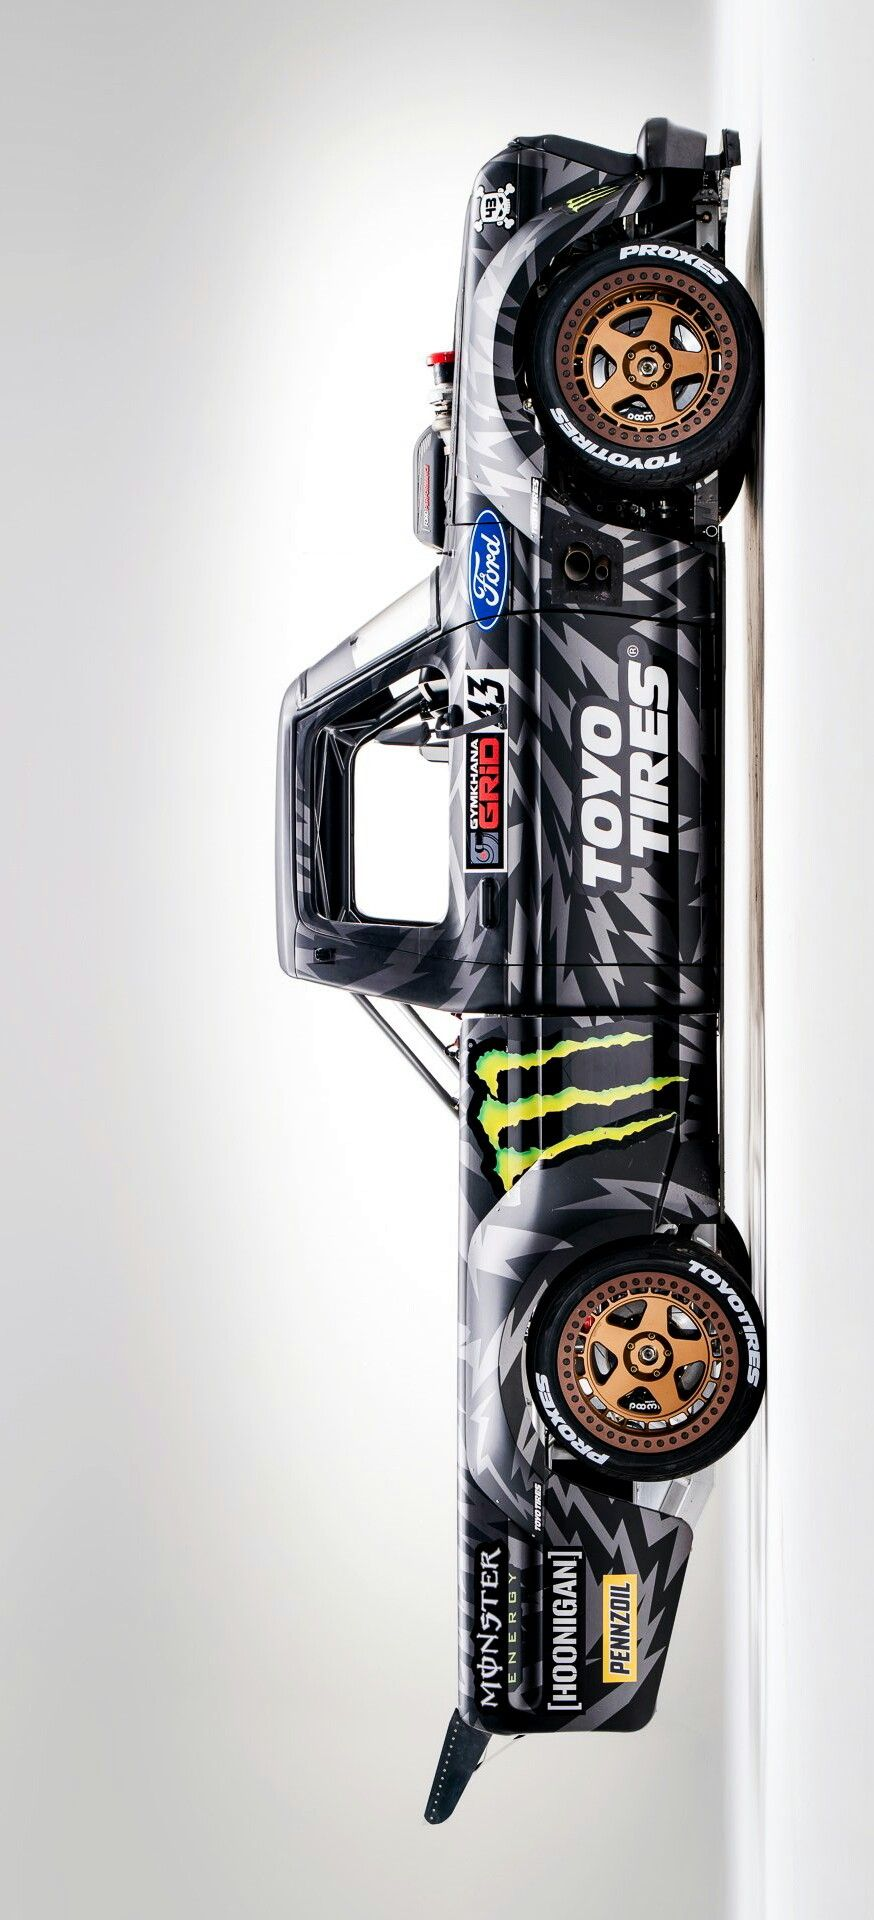 Ken Block S Hoonitruck Cars And Not Cars Ken Block Cars Cars